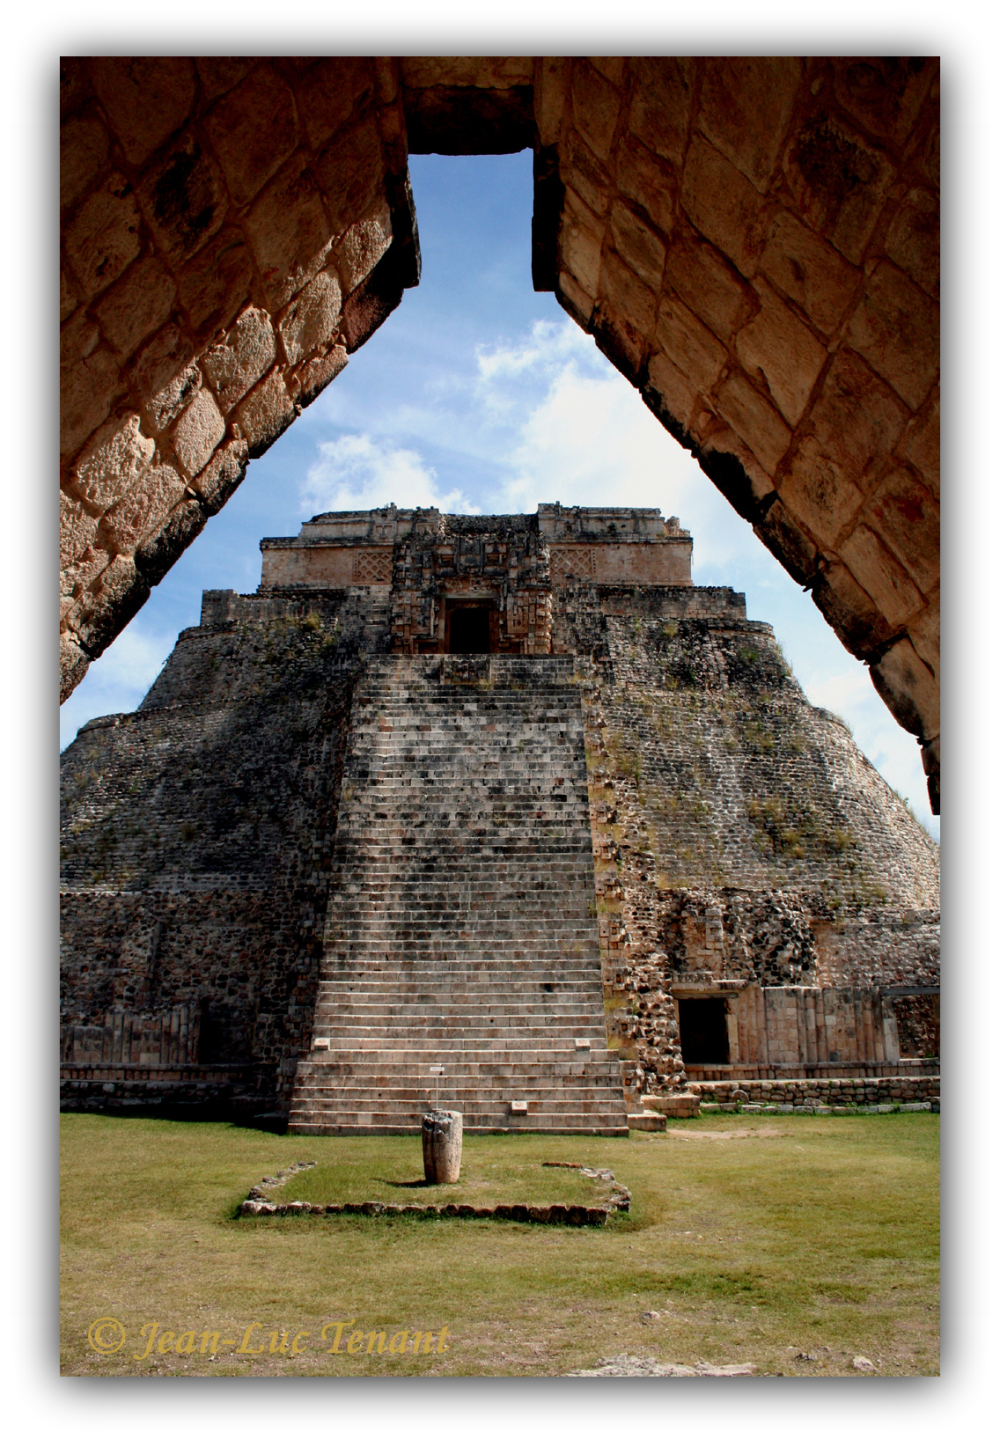 Uxmal (Mexique)